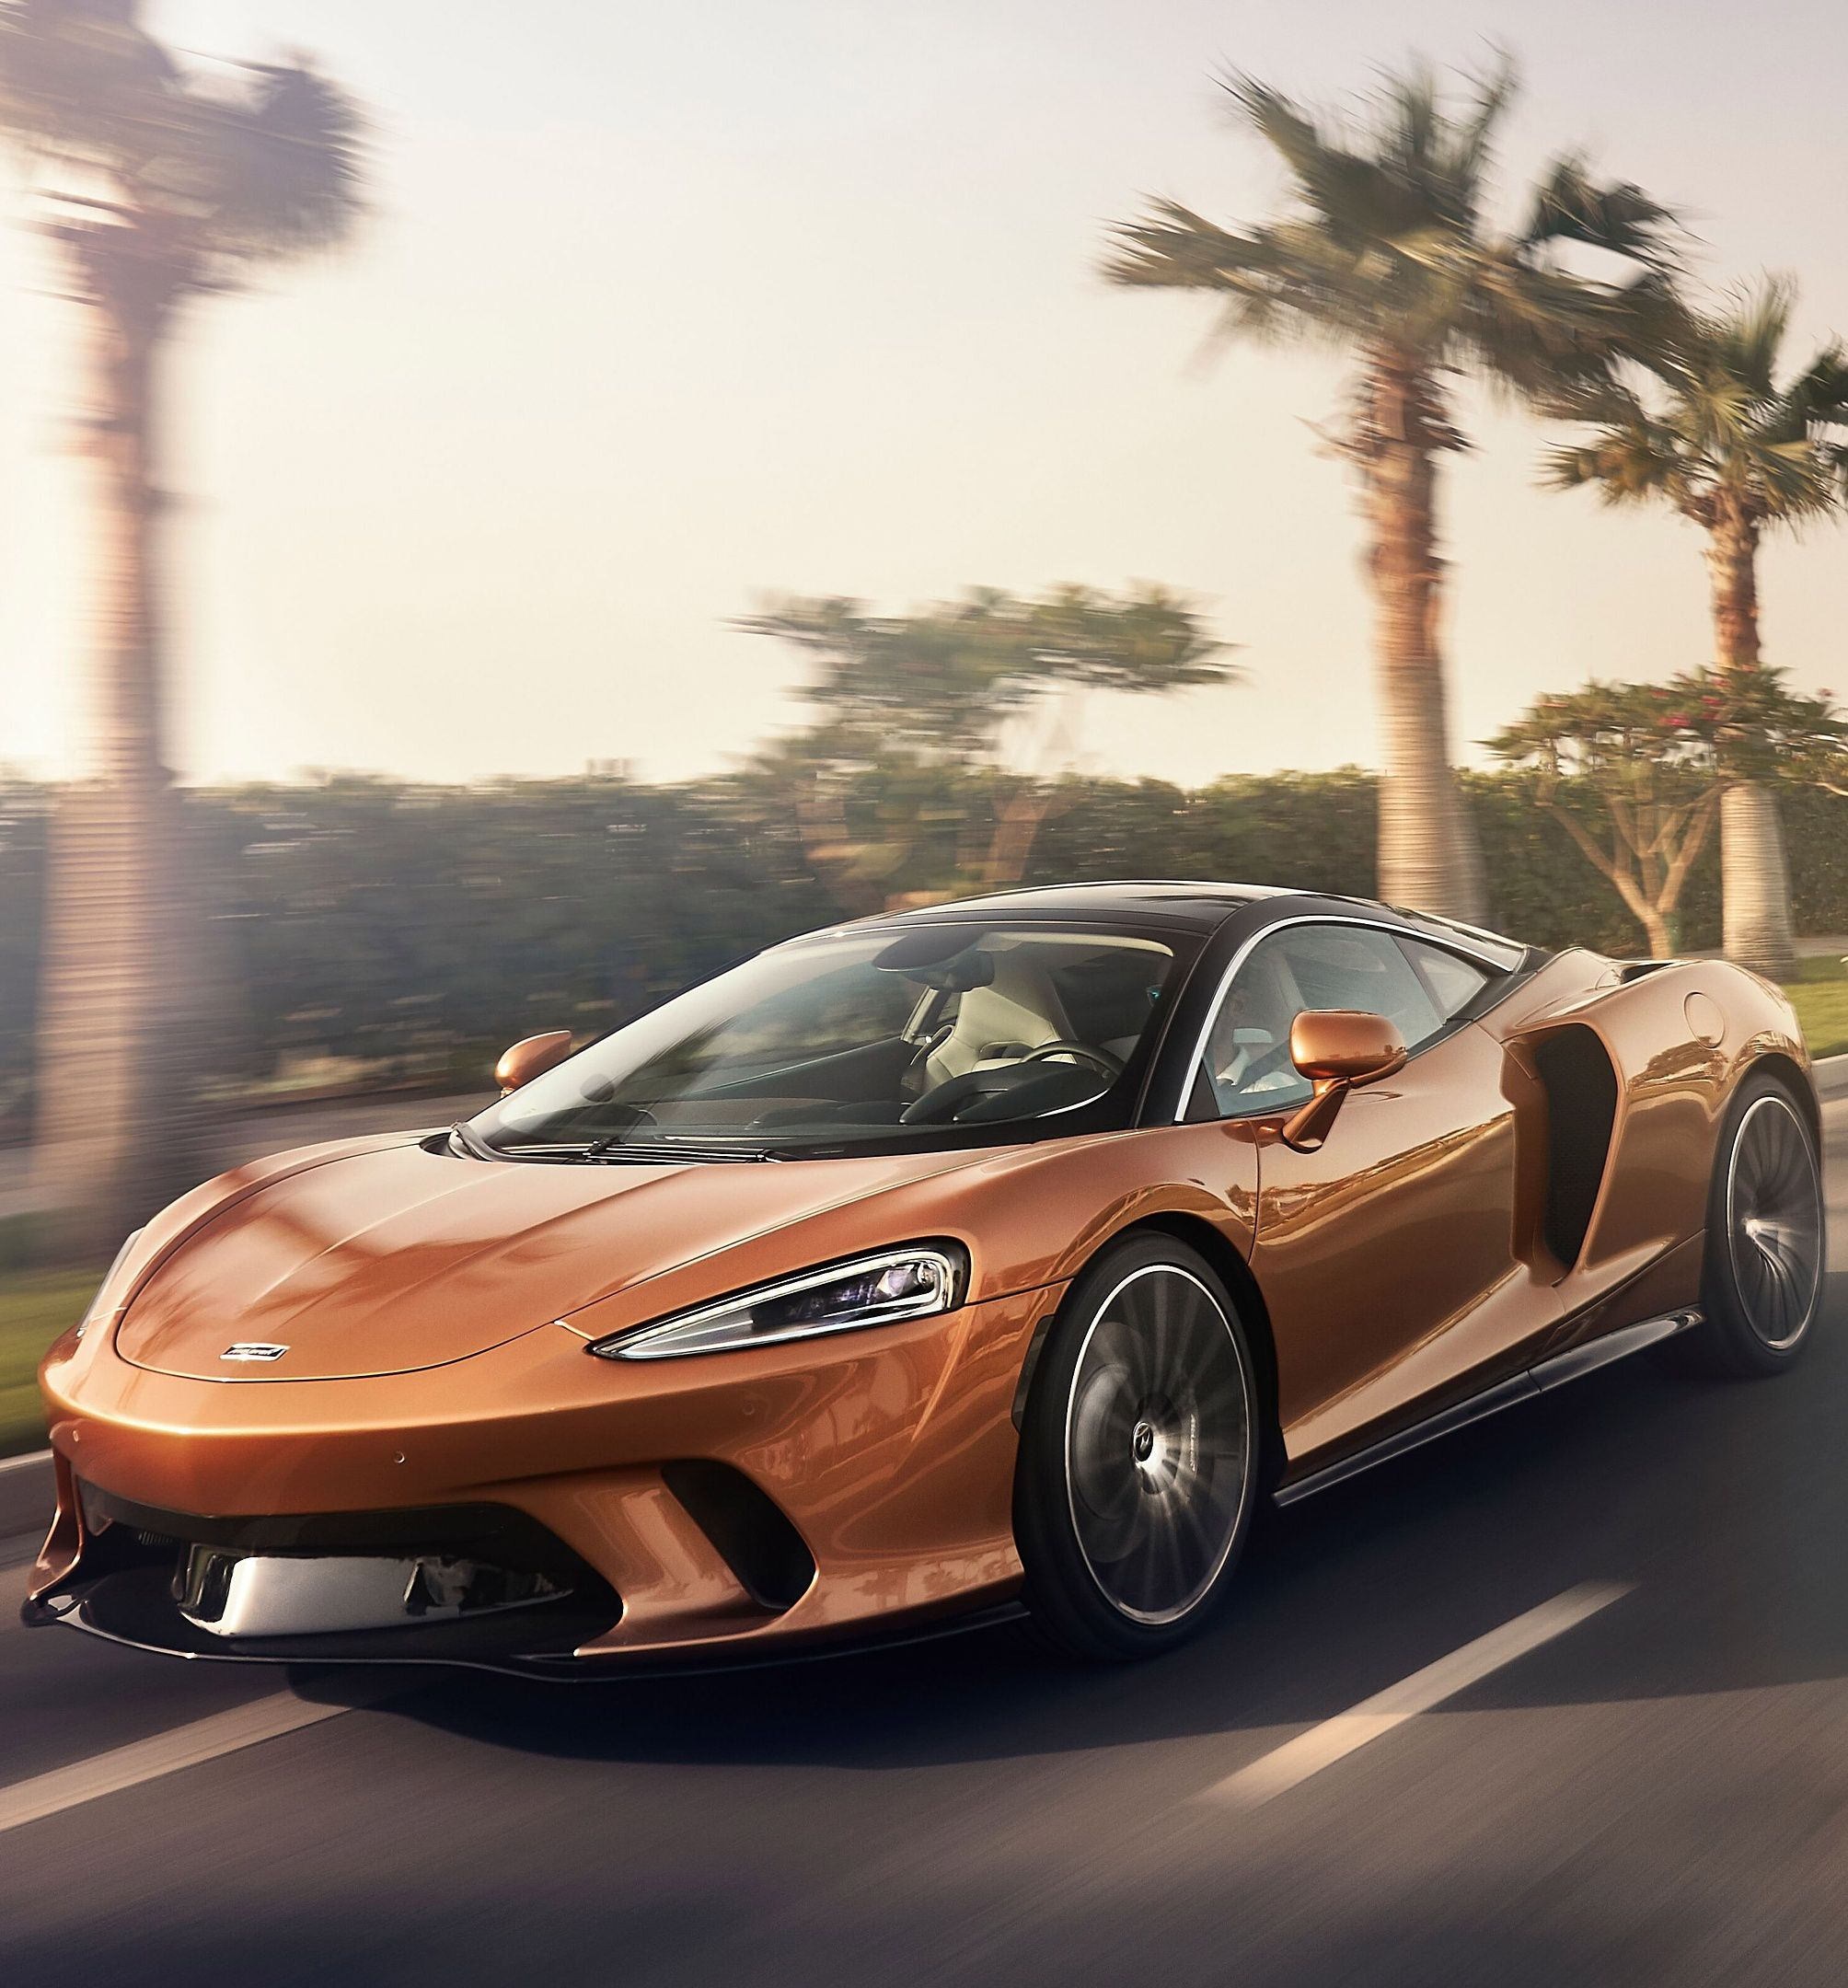 2020 Mclaren Gt V8 Car And Motorcycle Design Mclaren Super Cars